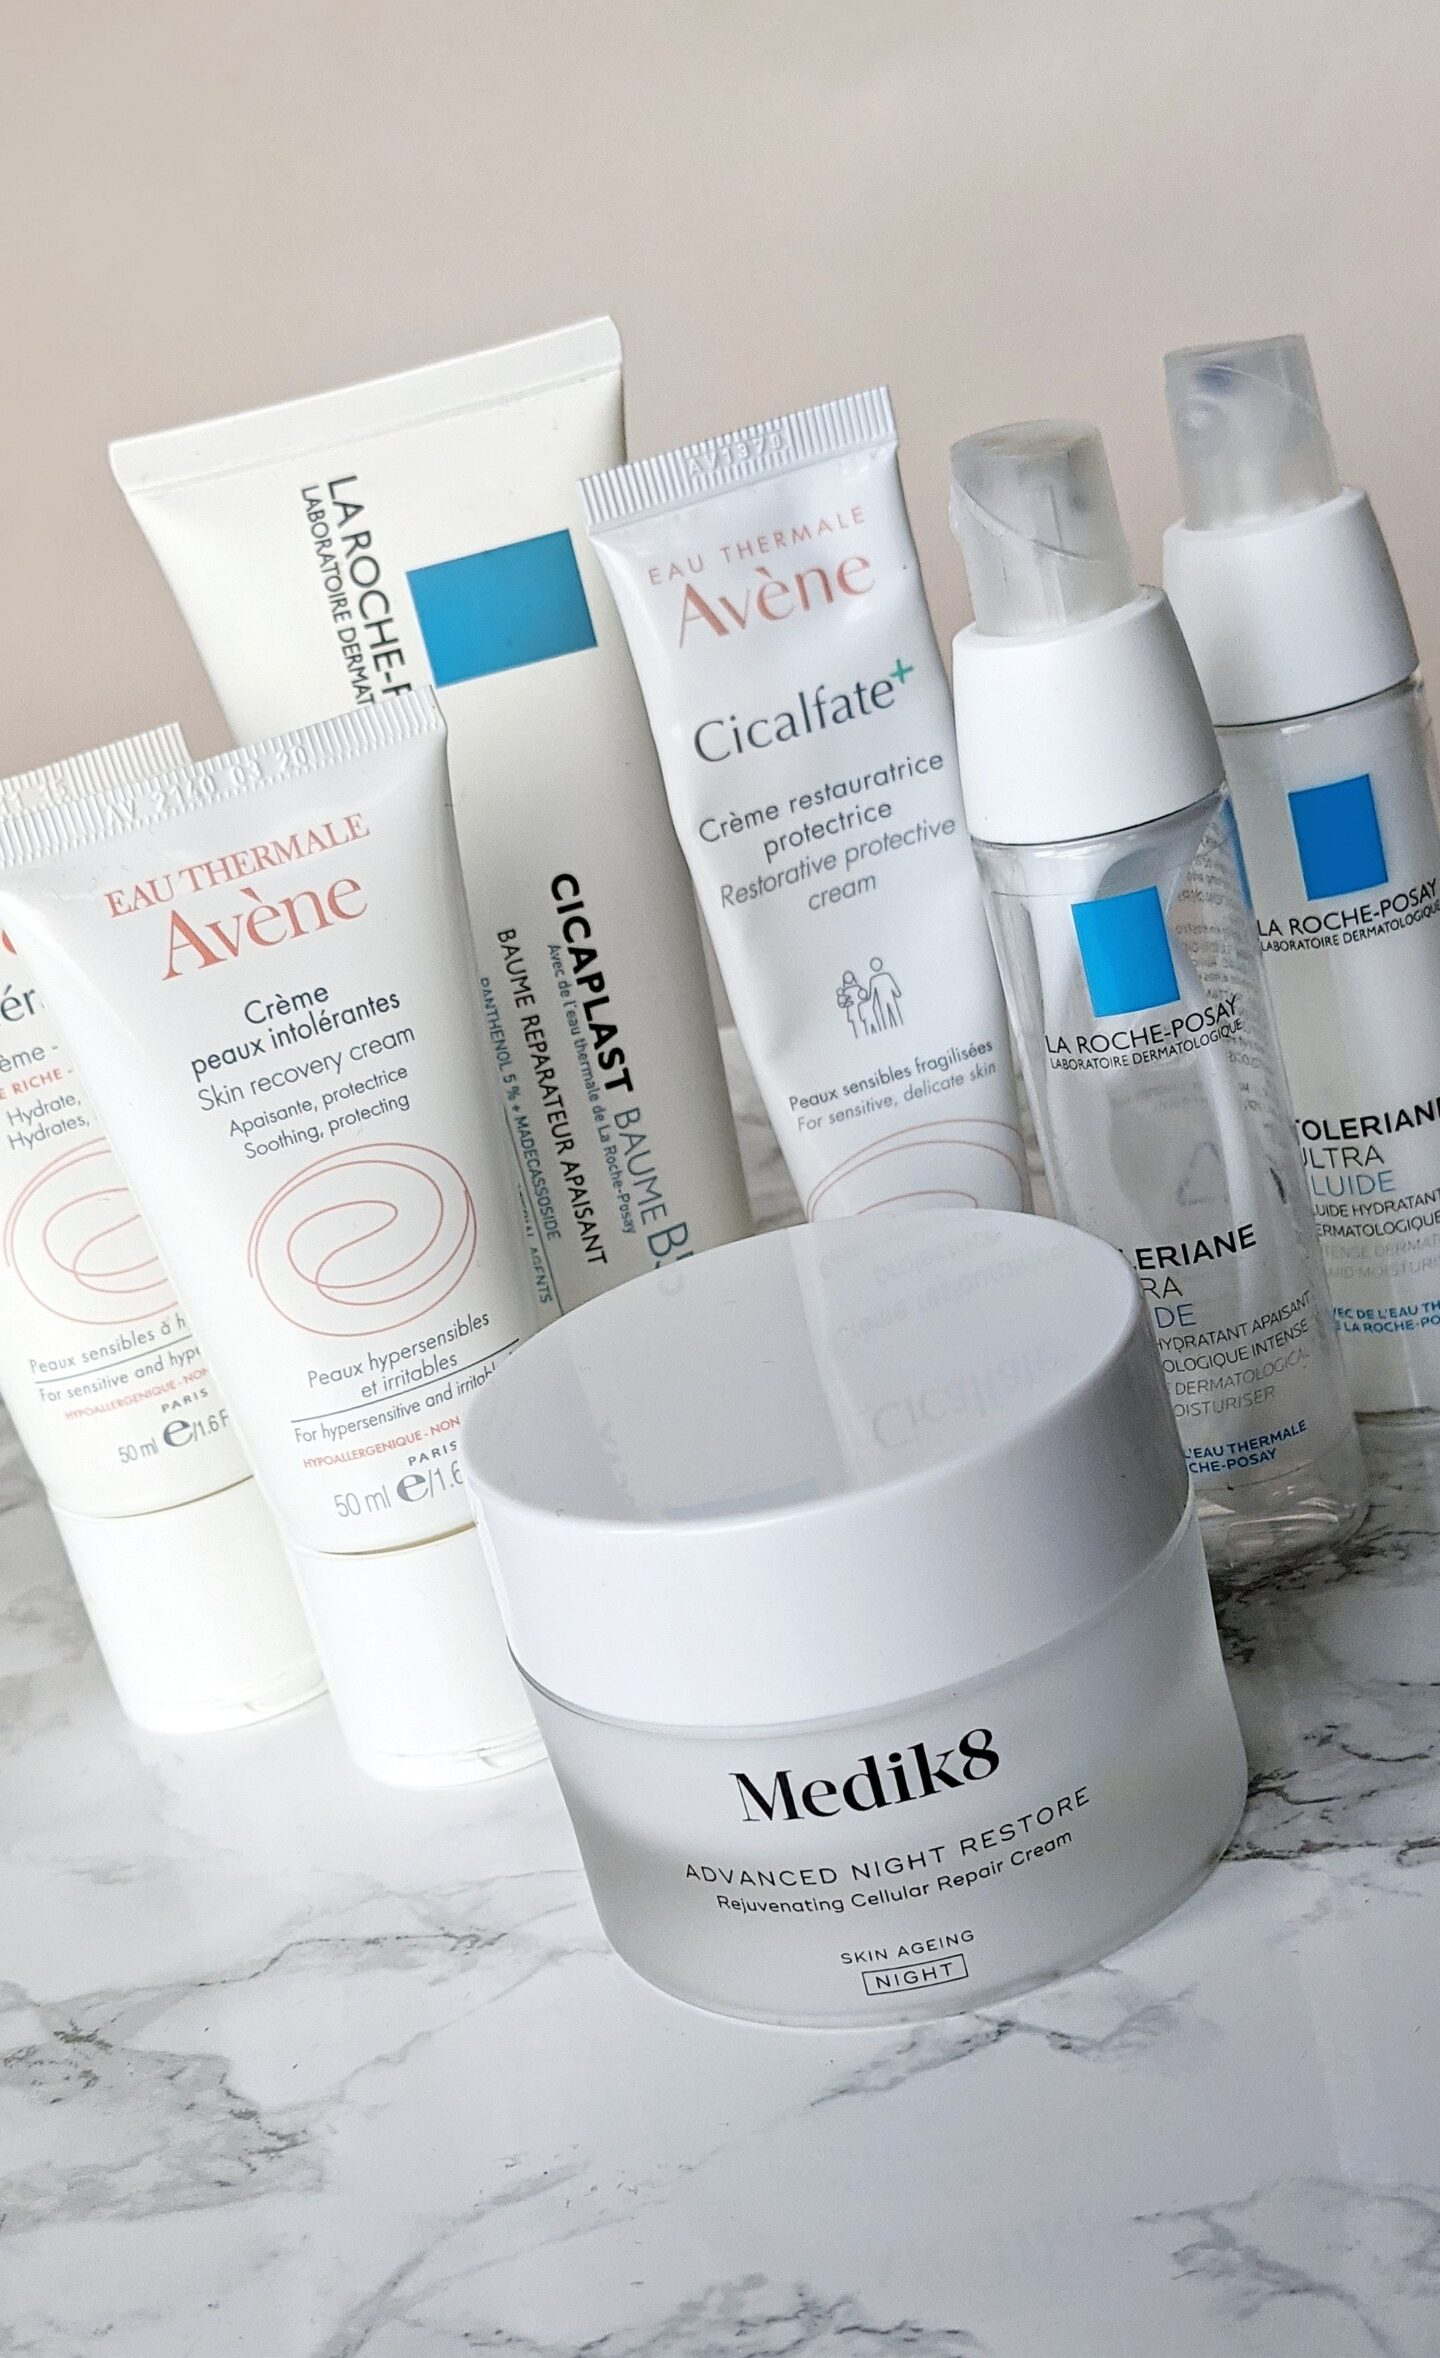 The best moisturisers for rosacea and sensitive skin. Trying to find the best skincare routine for rosacea? My blog can help. Skincare that doesn't irritate rosacea. #talontedlex